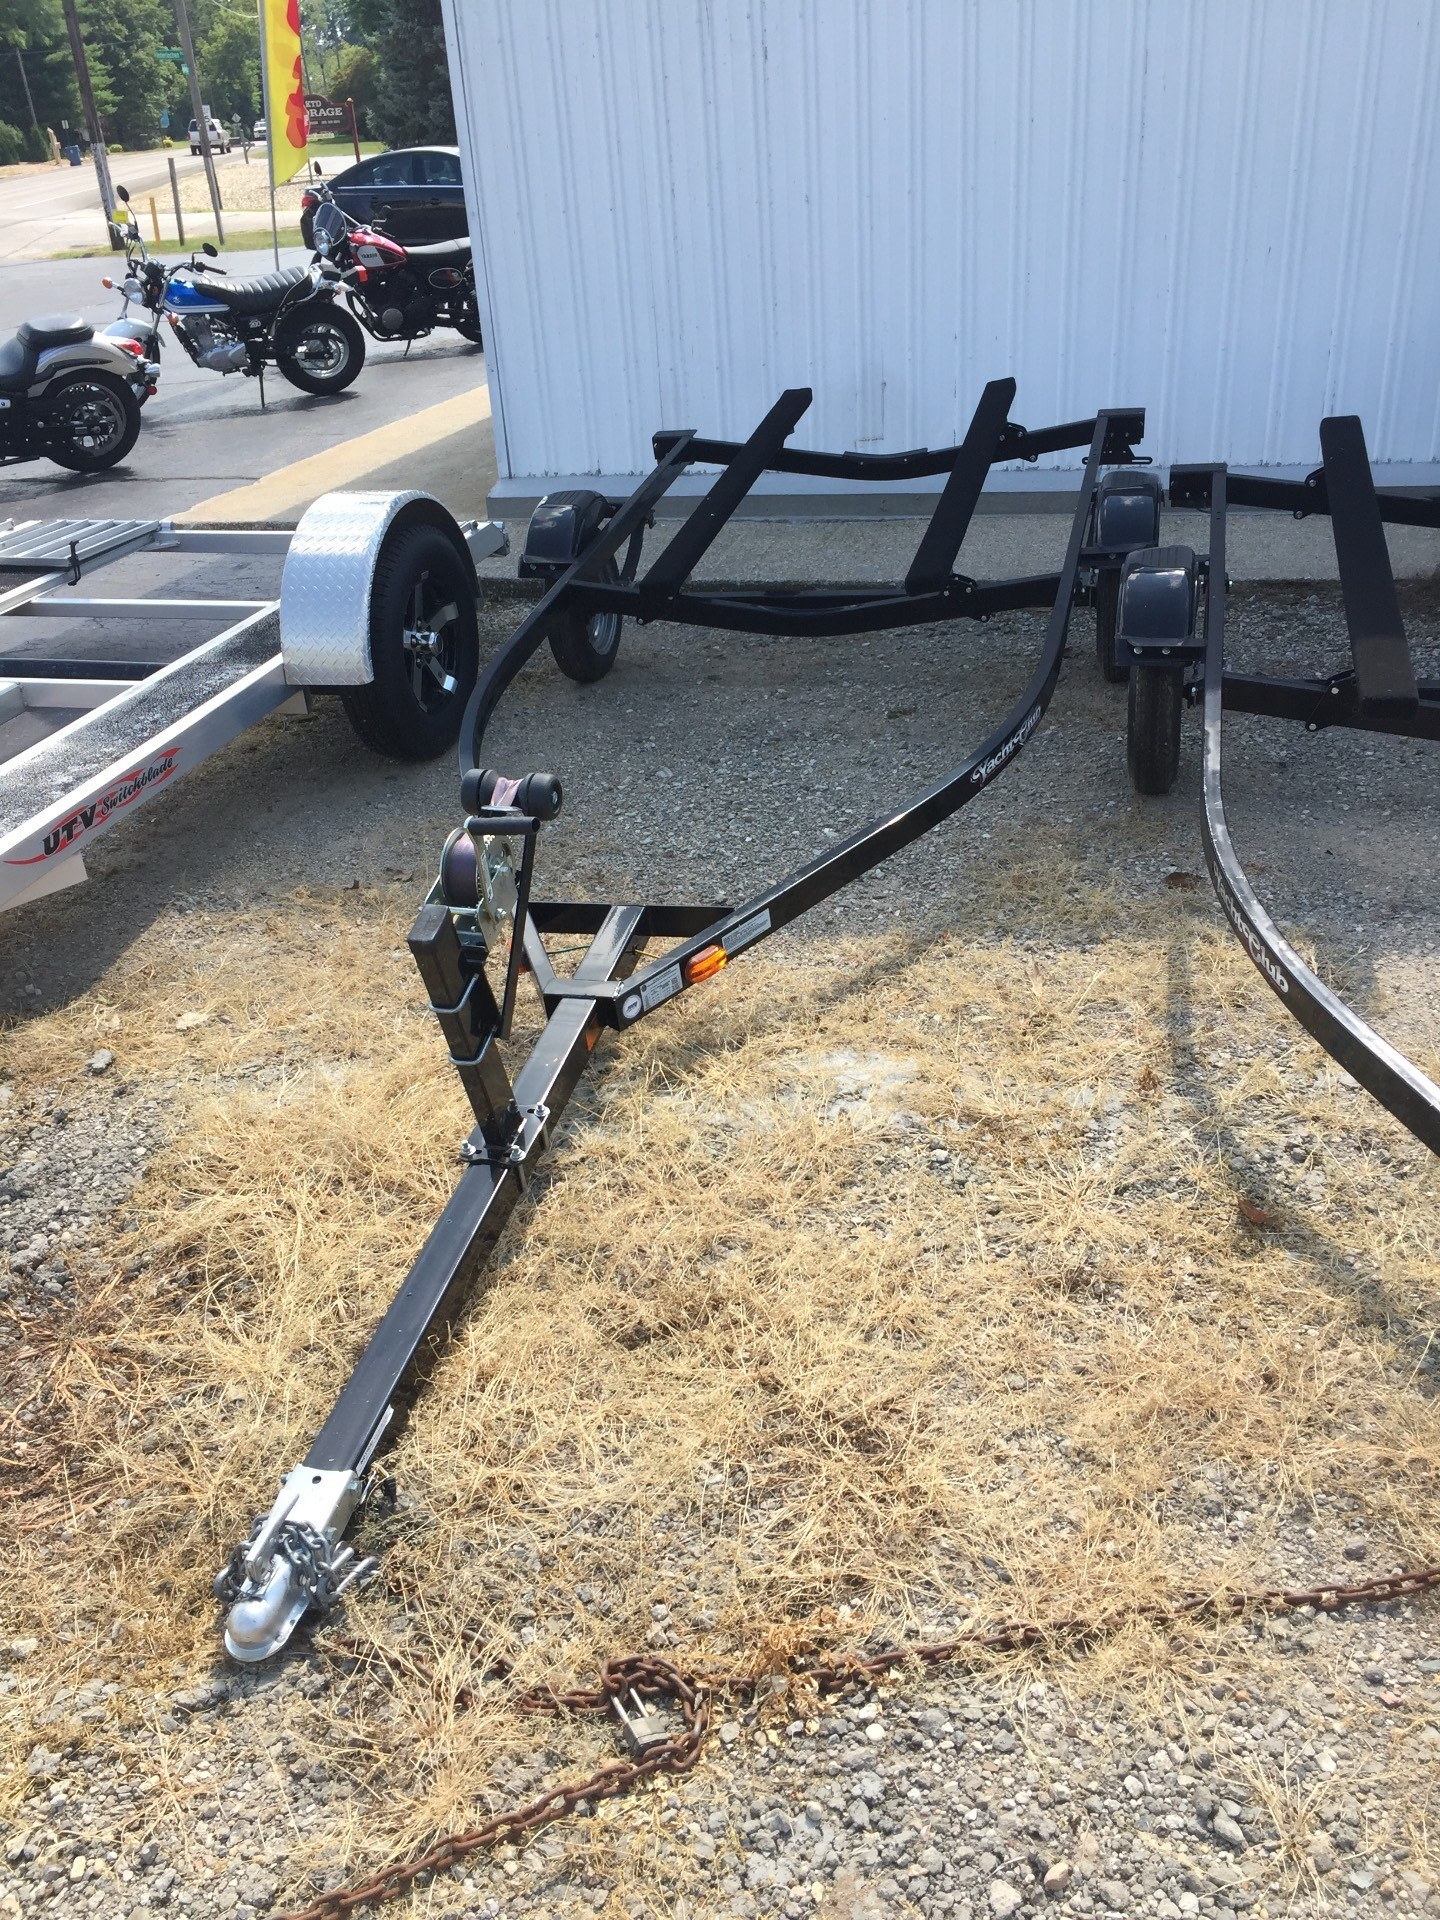 2015 Yacht Club  12-14 boat trailer in Coloma, Michigan